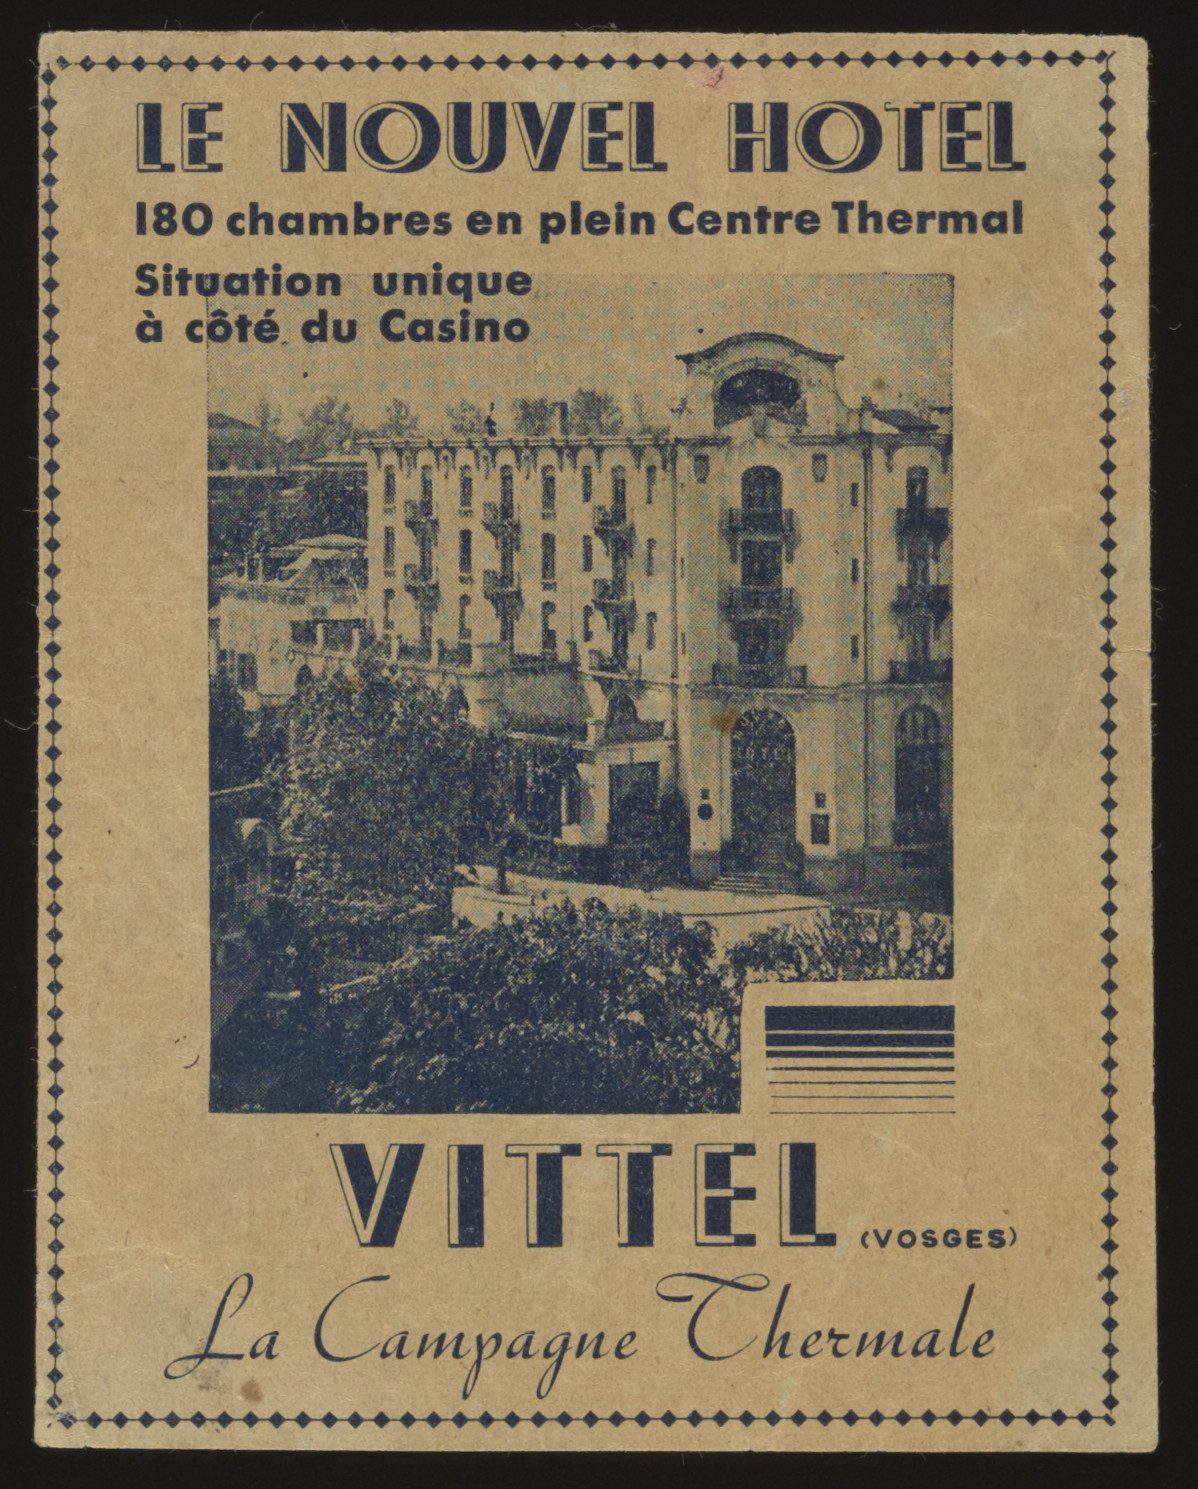 Advertisement for the Nouvel Hotel which became incorporated into the Vittel internment camp.